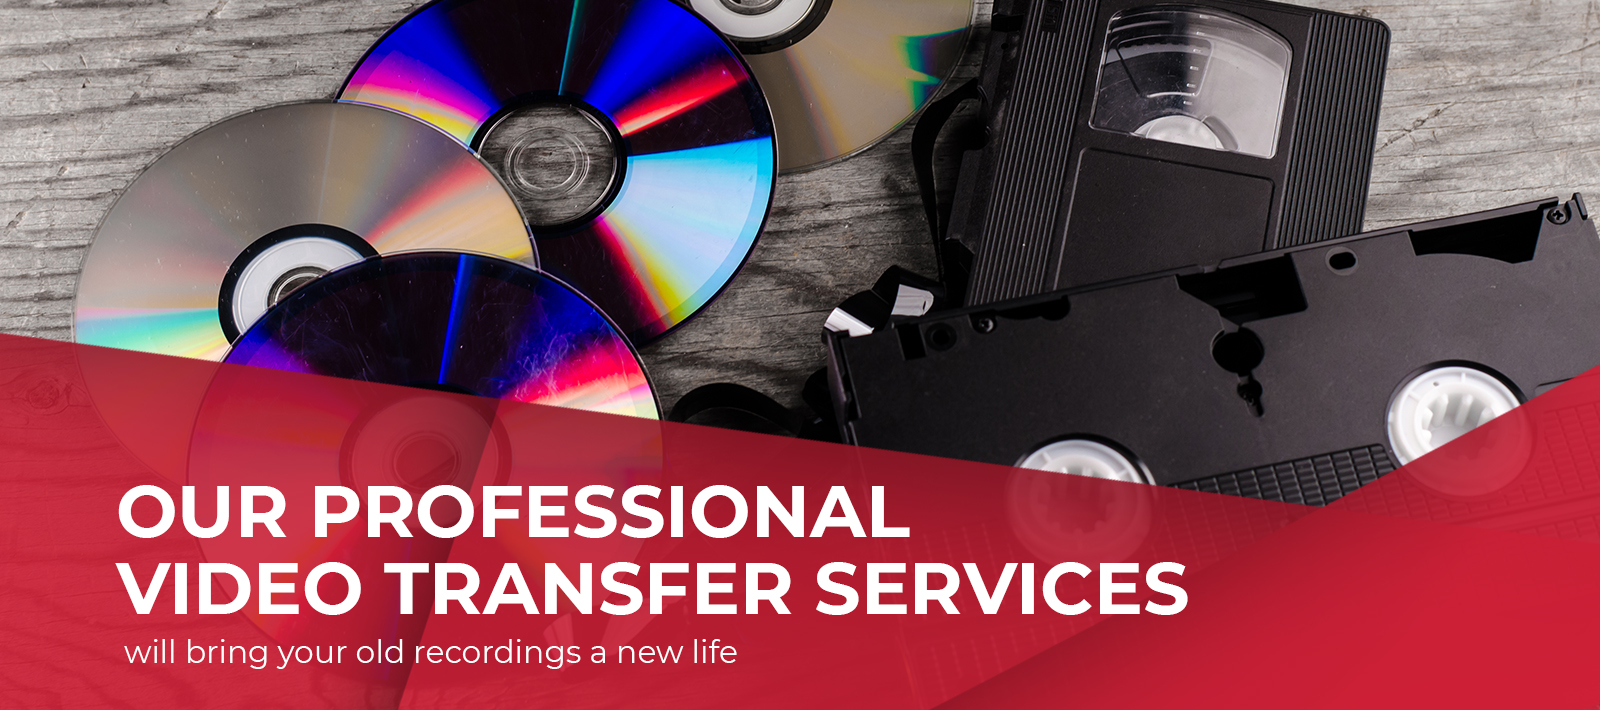 Our professional Video Transfer Services will bring your old recordings a new life